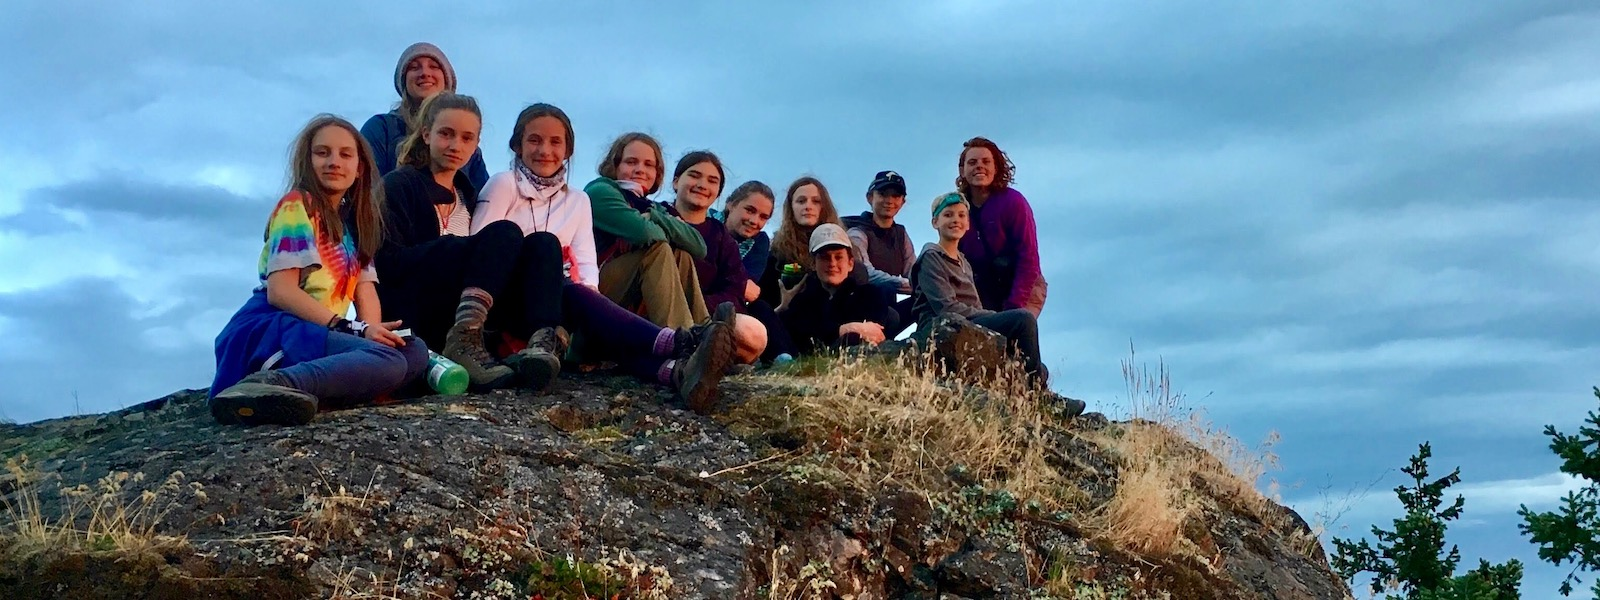 Coastal Backpacking Camp for Girls in Washington